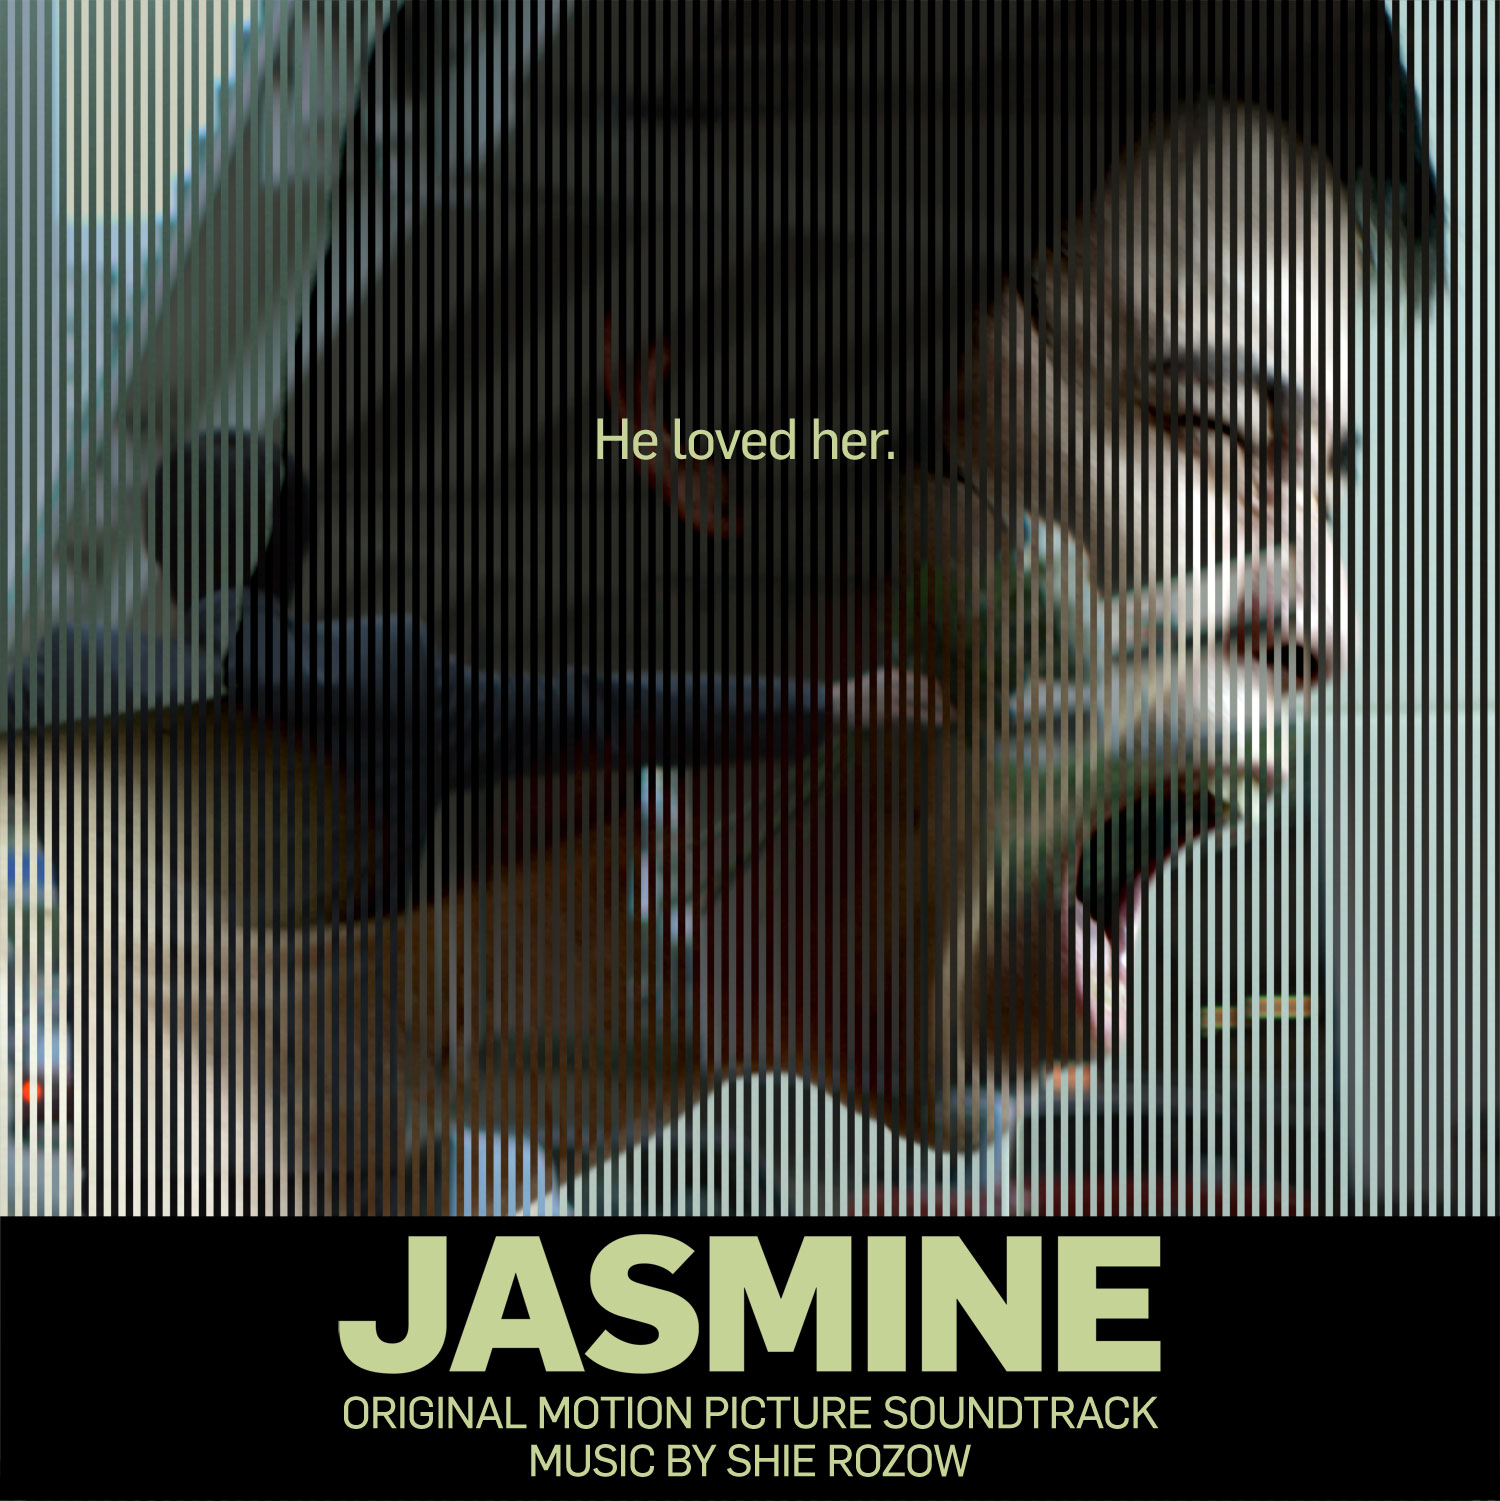 Jasmine (Original Motion Picture Soundtrack)